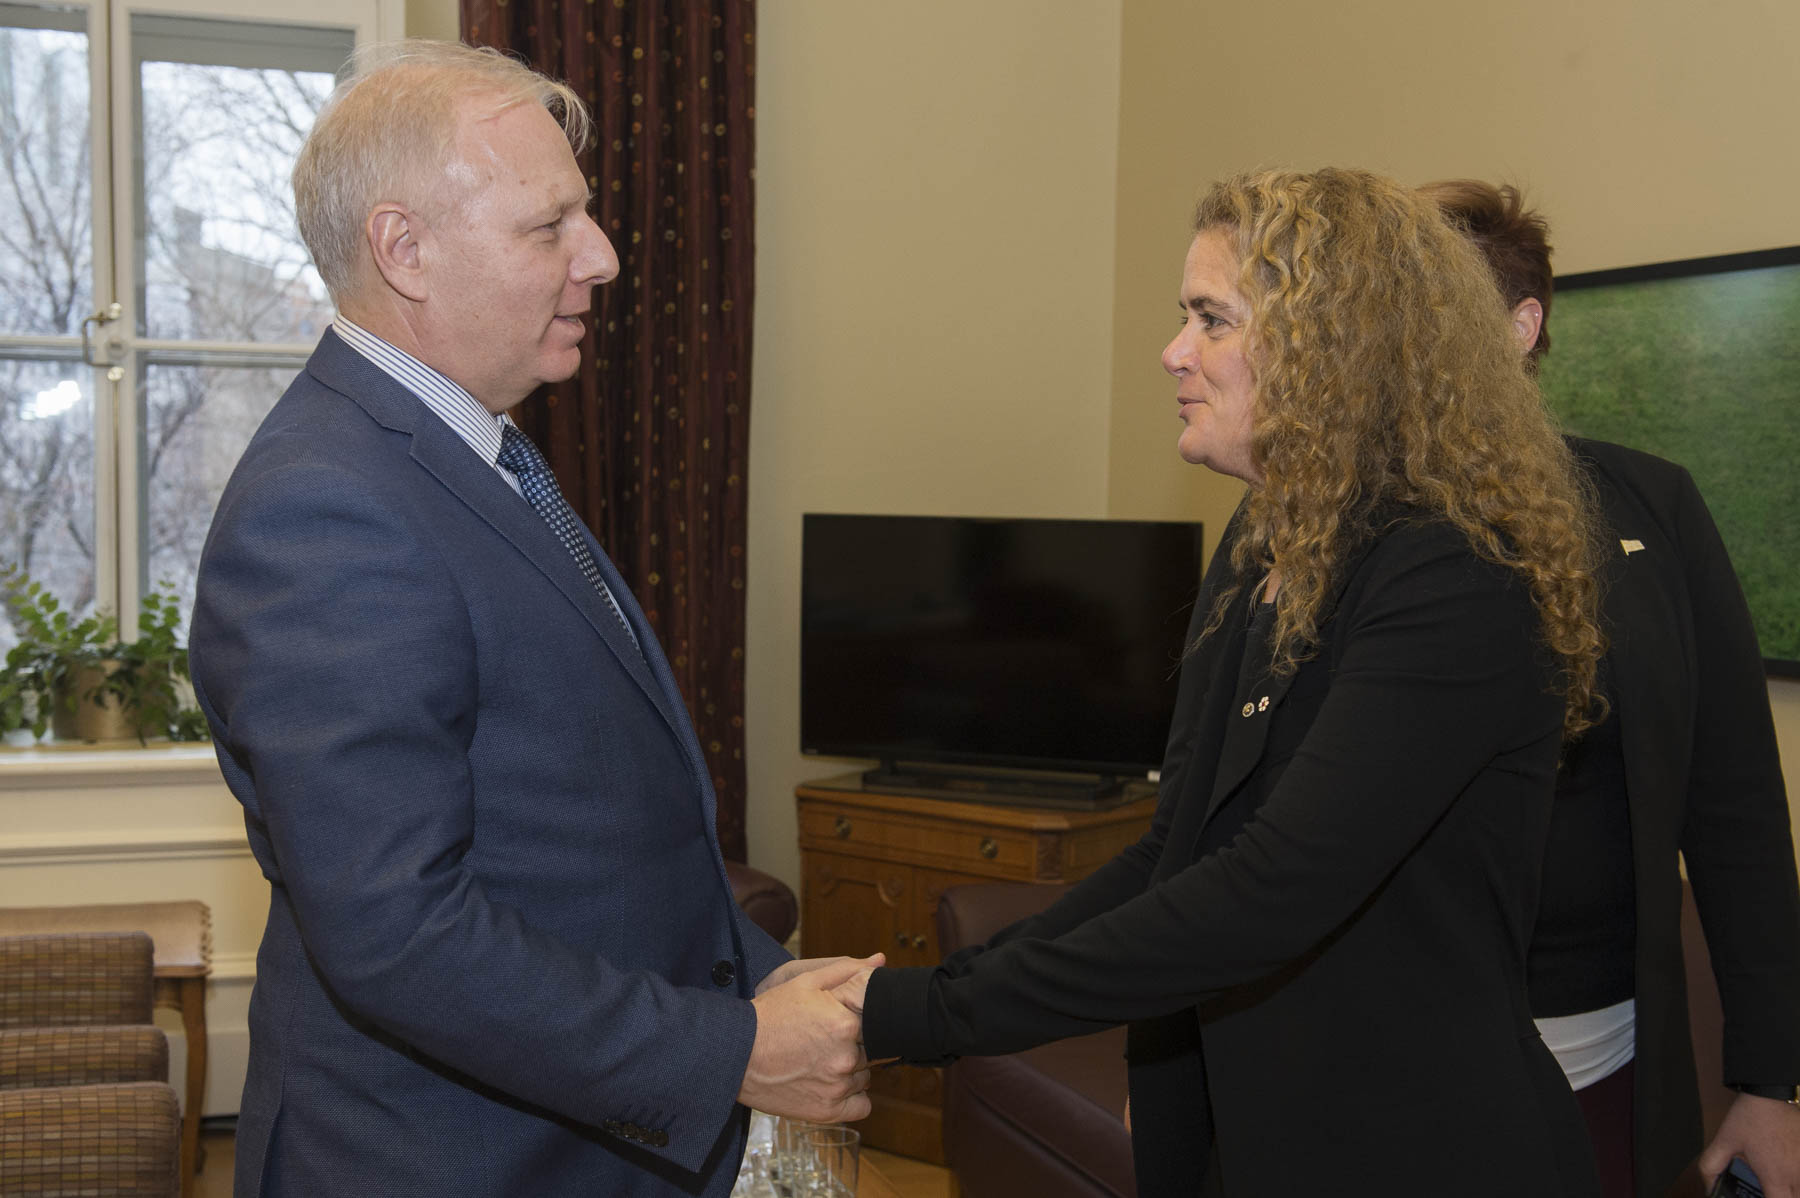 In the afternoon, Her Excellency met with Mr. Jean-François Lisée, Quebec's Leader of the Official Opposition, in the Parliament Building.